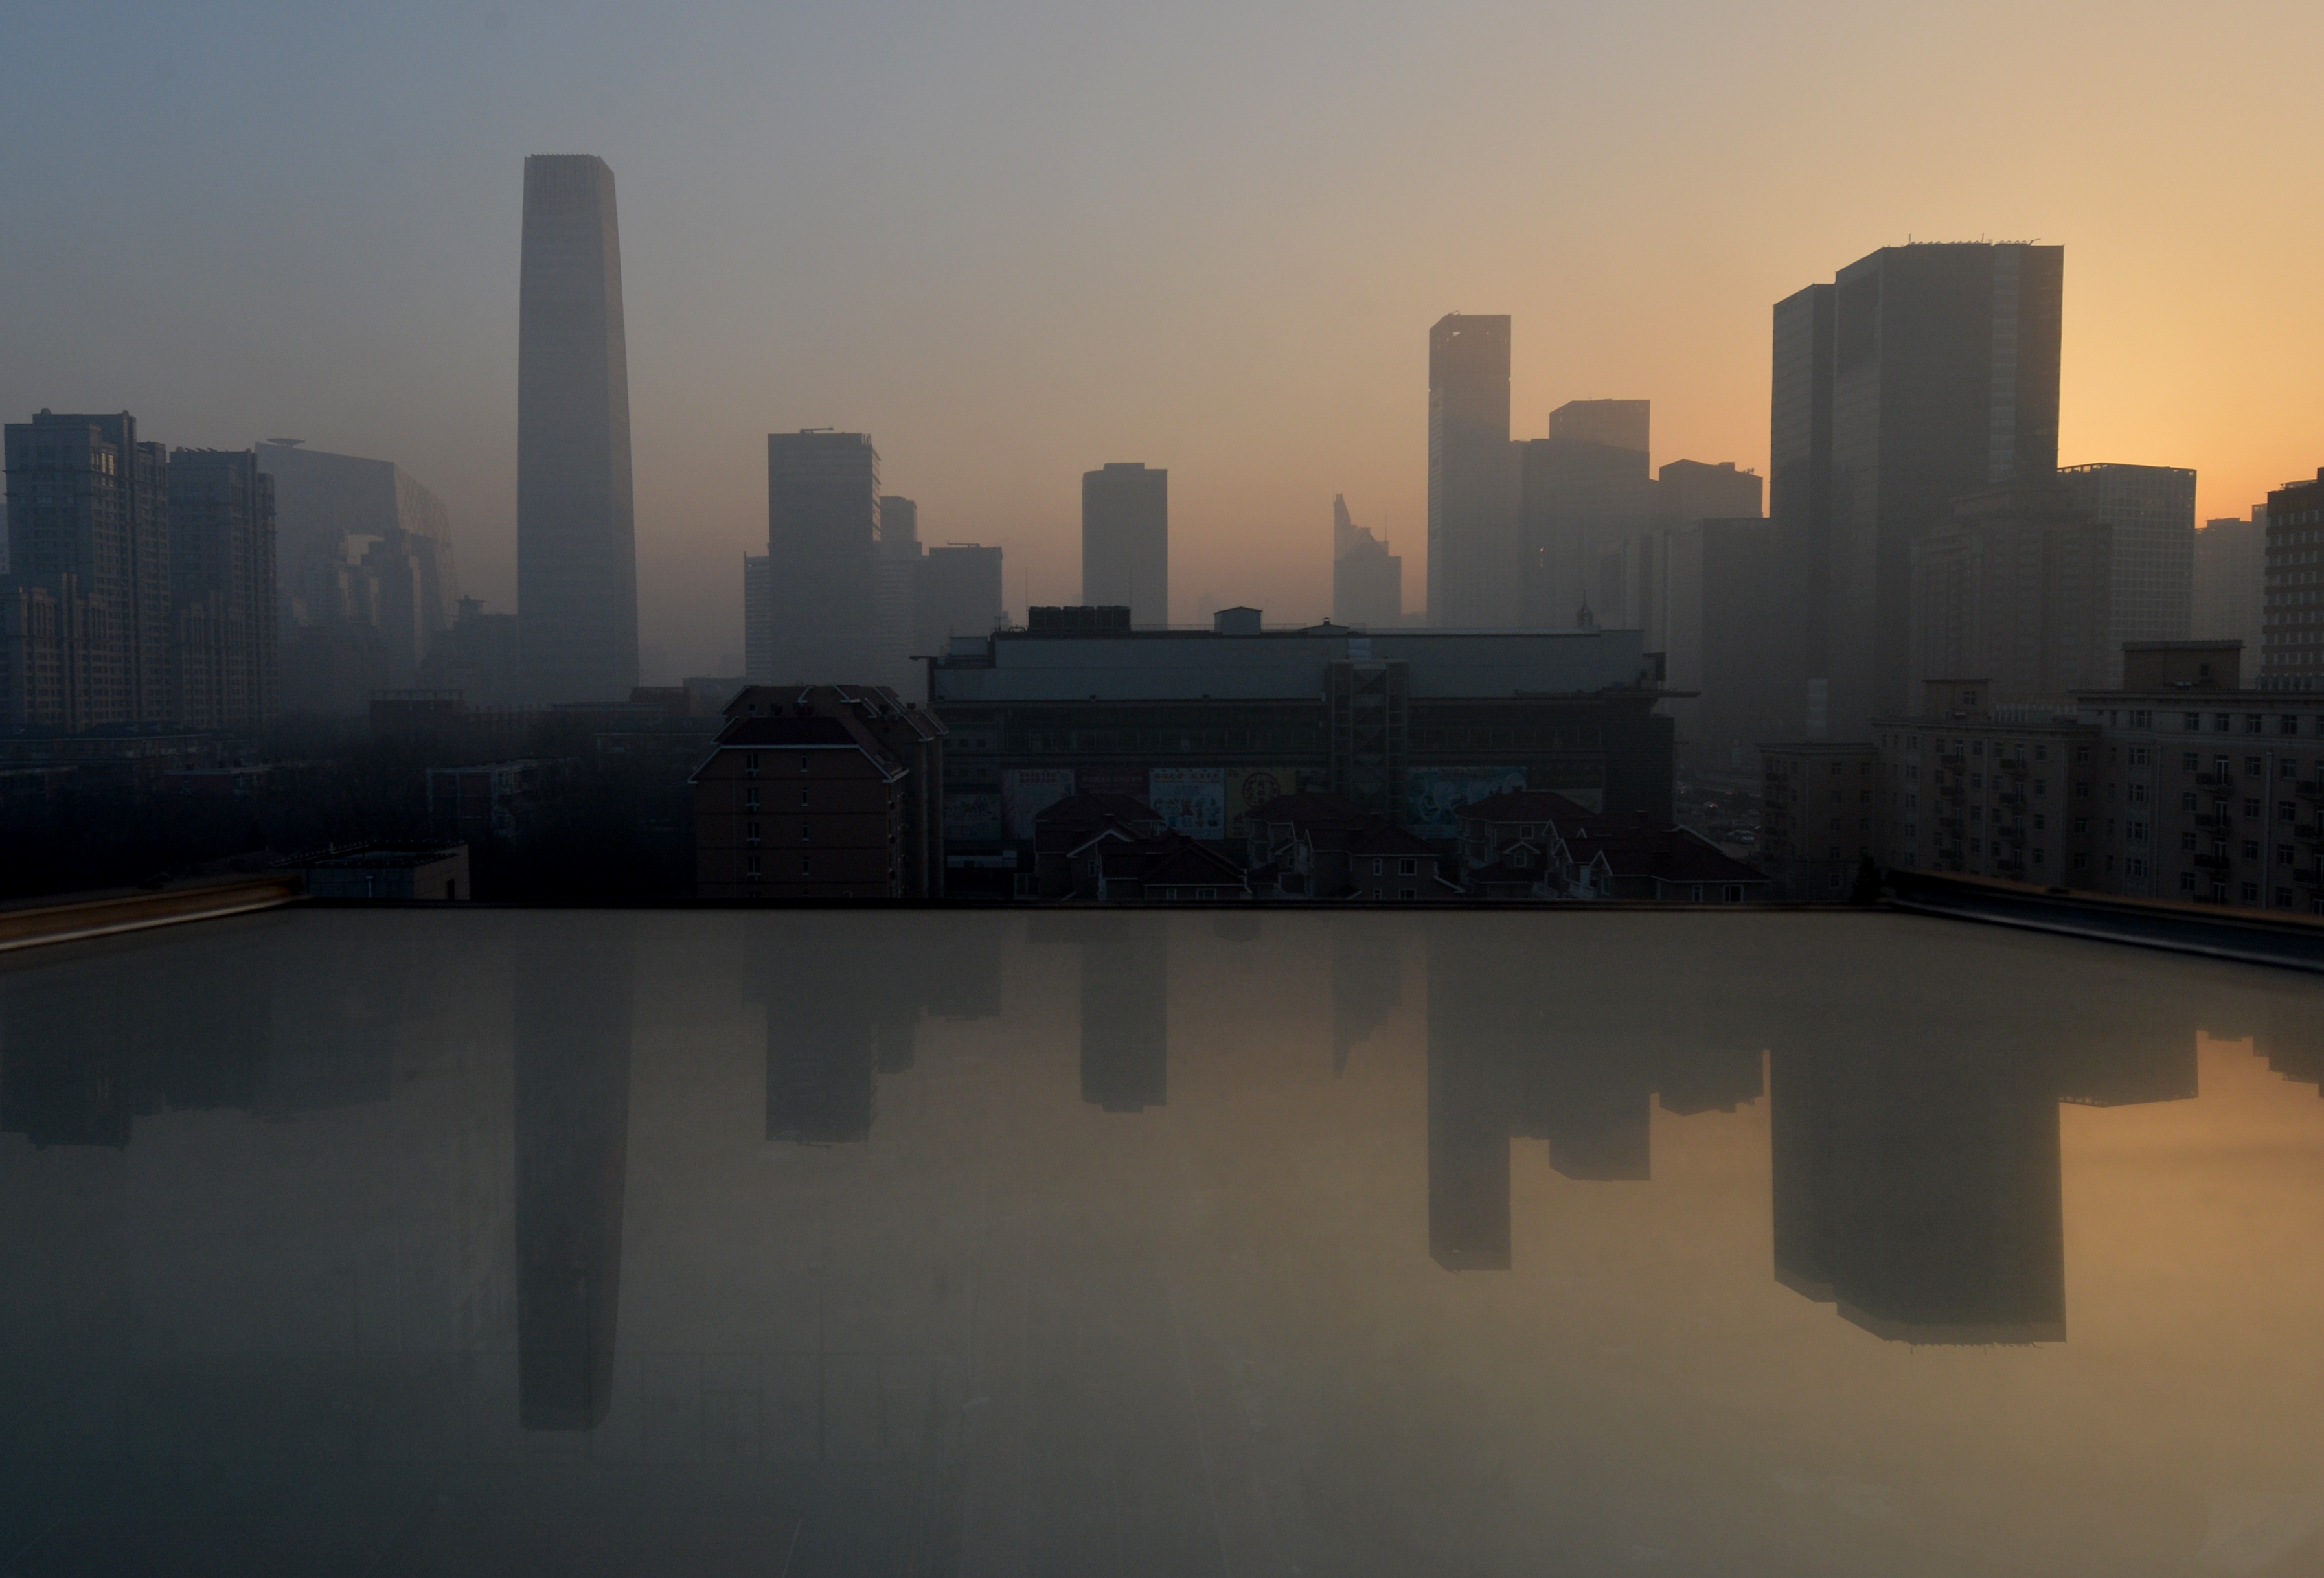 Air pollution hangs over the skyline as the sun rises over Beijing's central business district. Dense smog shrouded the city with pollution at hazardous levels for a fourth day and residents were advised to stay indoors, January 14, 2013.